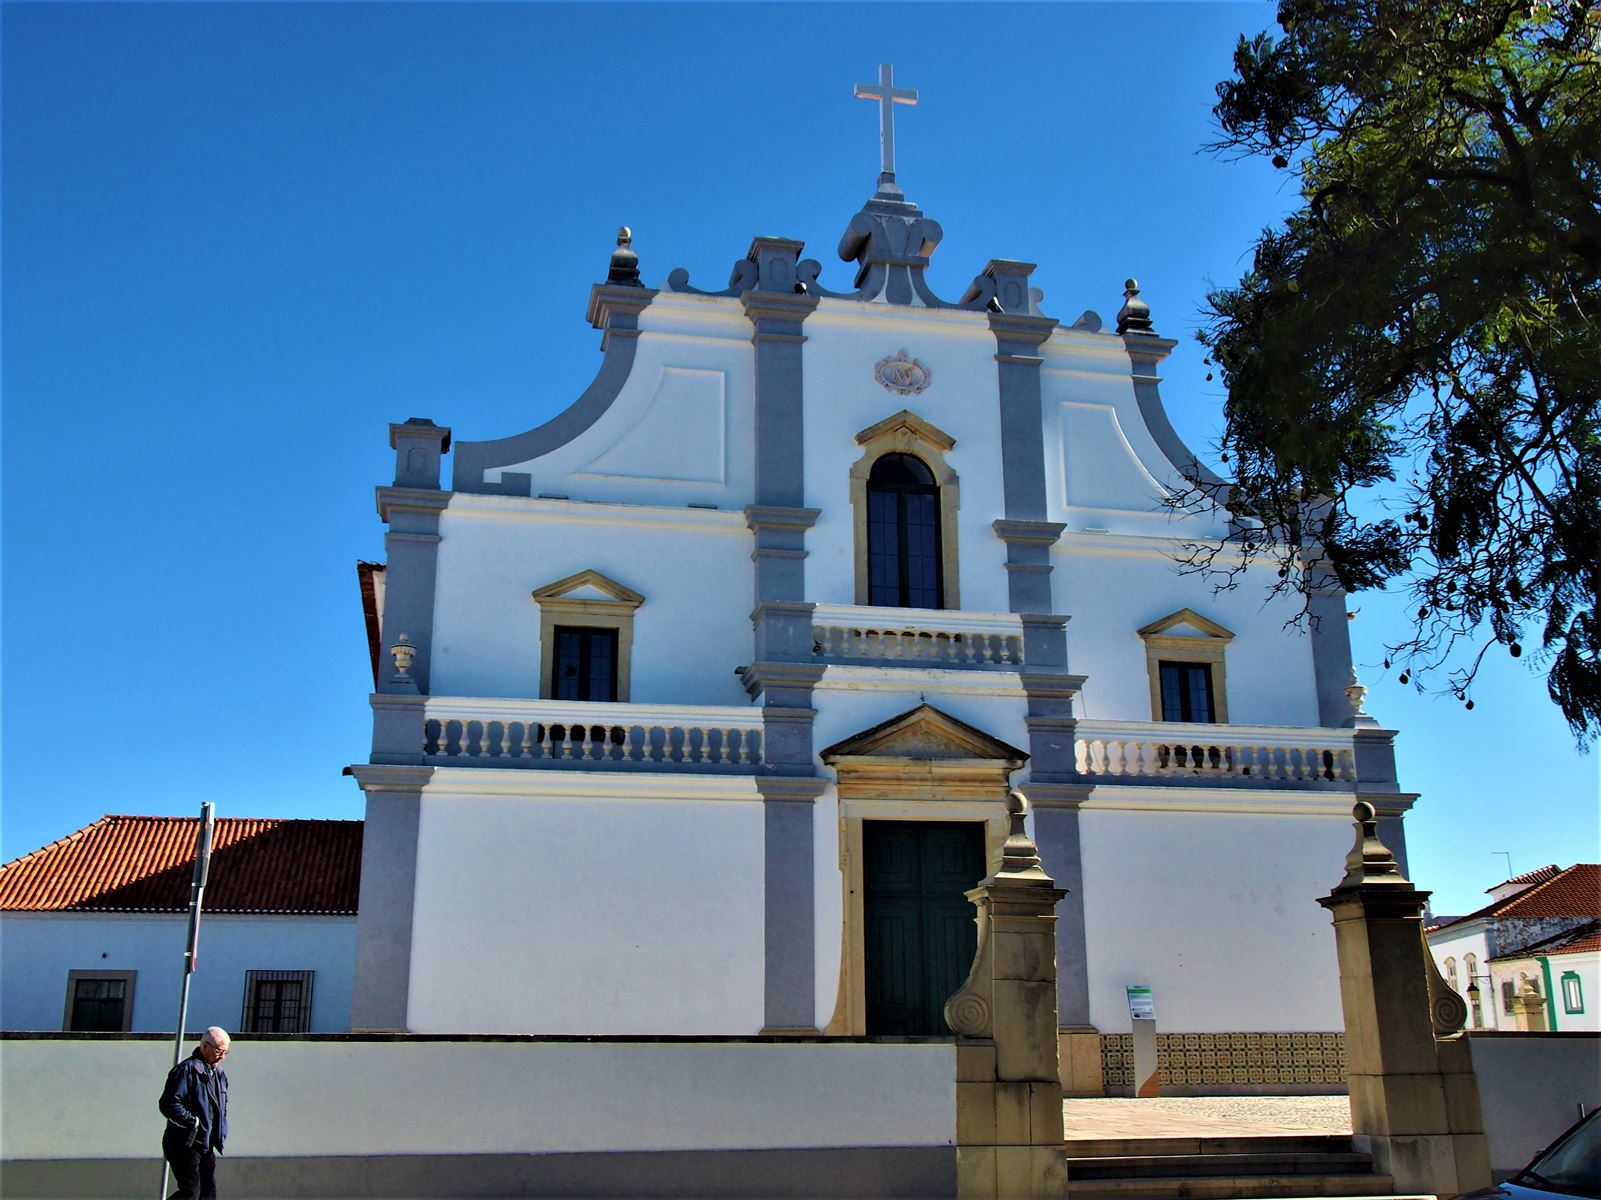 Igreja Matriz de Lagoa - the Mother Church of Lagoa